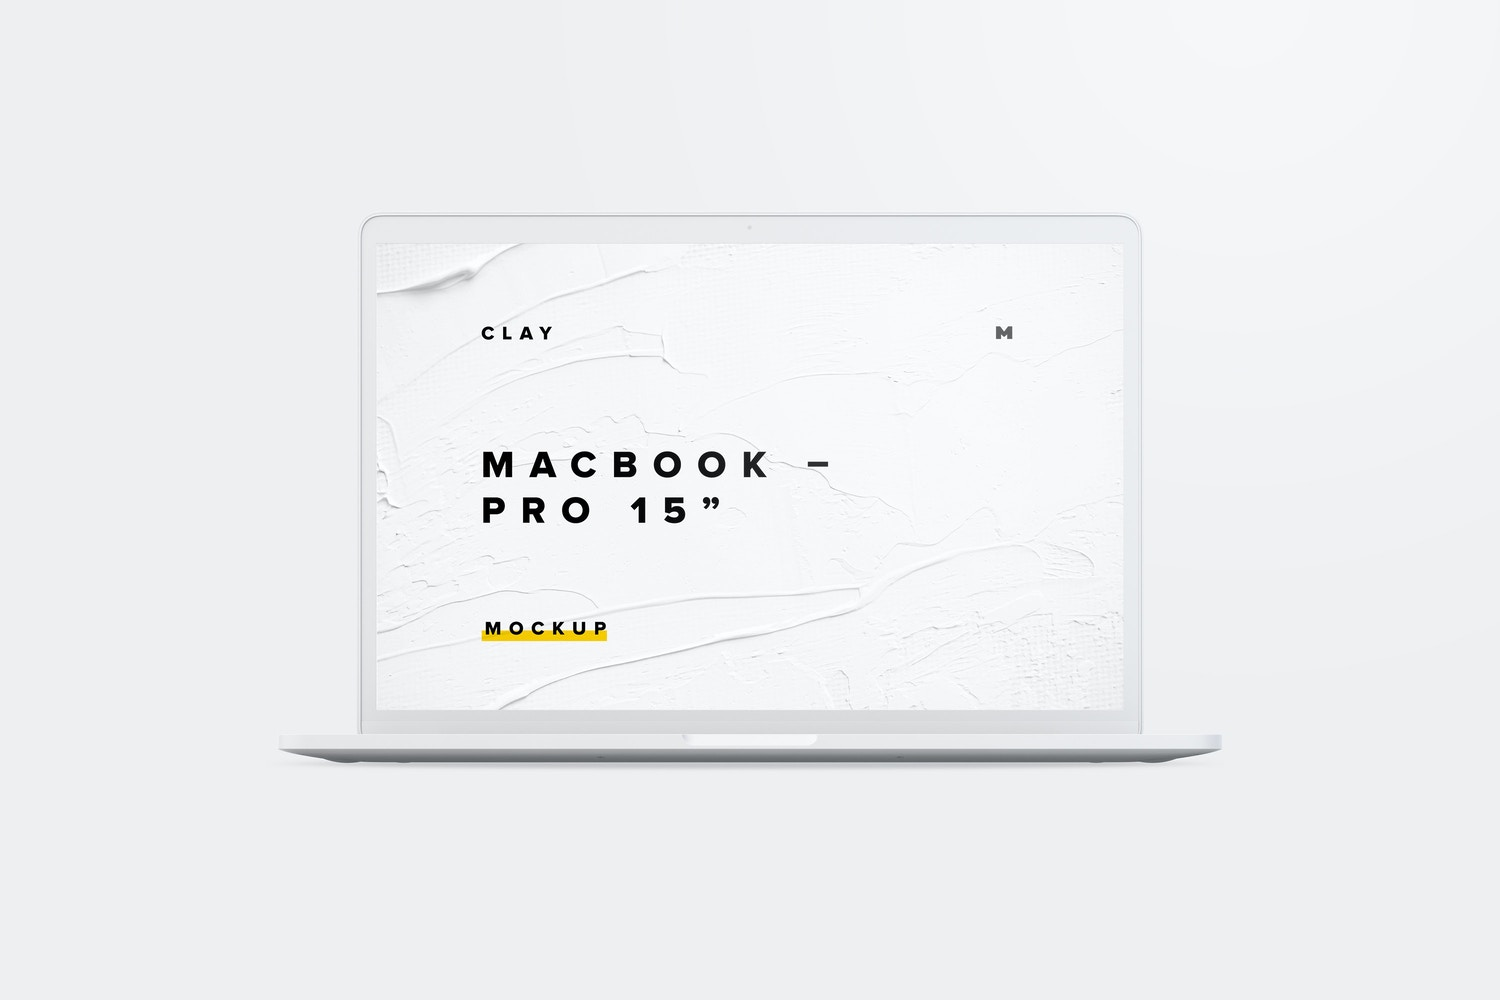 "Clay MacBook Pro 15"" with Touch Bar, Front View Mockup (1) by Original Mockups on Original Mockups"